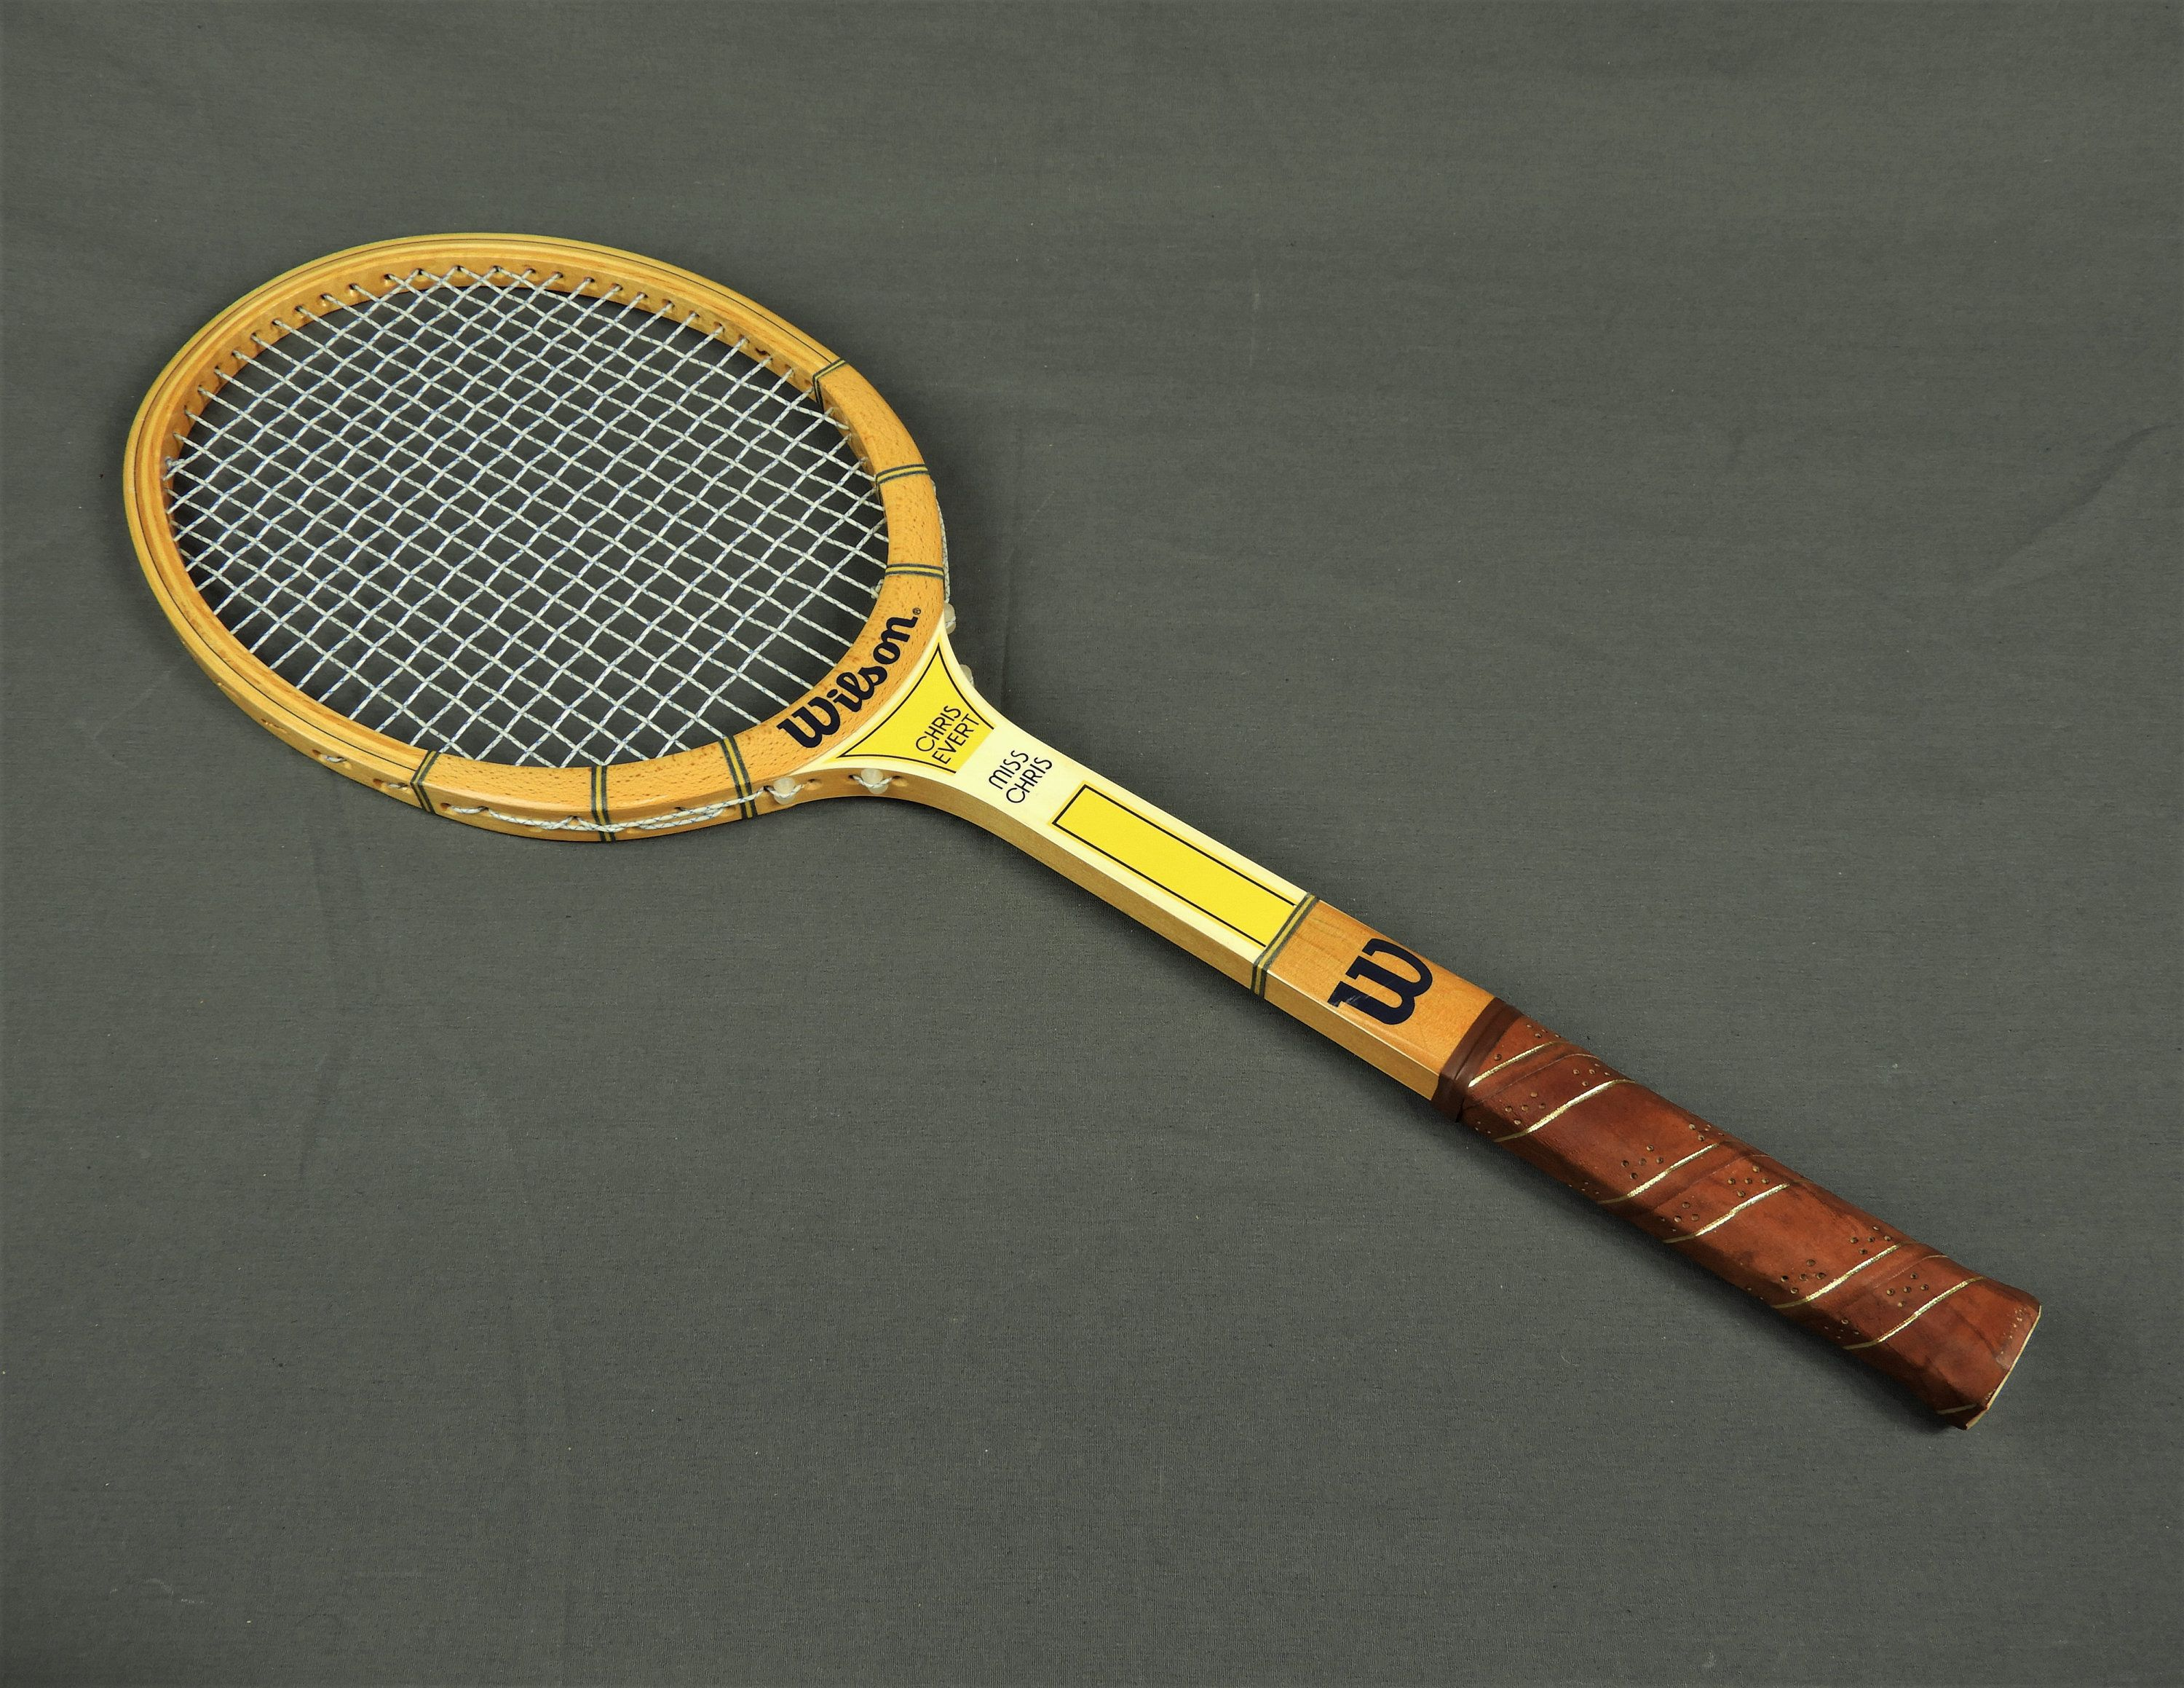 Vintage Tennis Racquet Chris Evert Wilson Miss Chris Brown Leather Wrapped Handle Birds Eye Maple Wood Home Decor Sports Collectible Vintage Tennis Chris Evert Wilson Tennis Racquets